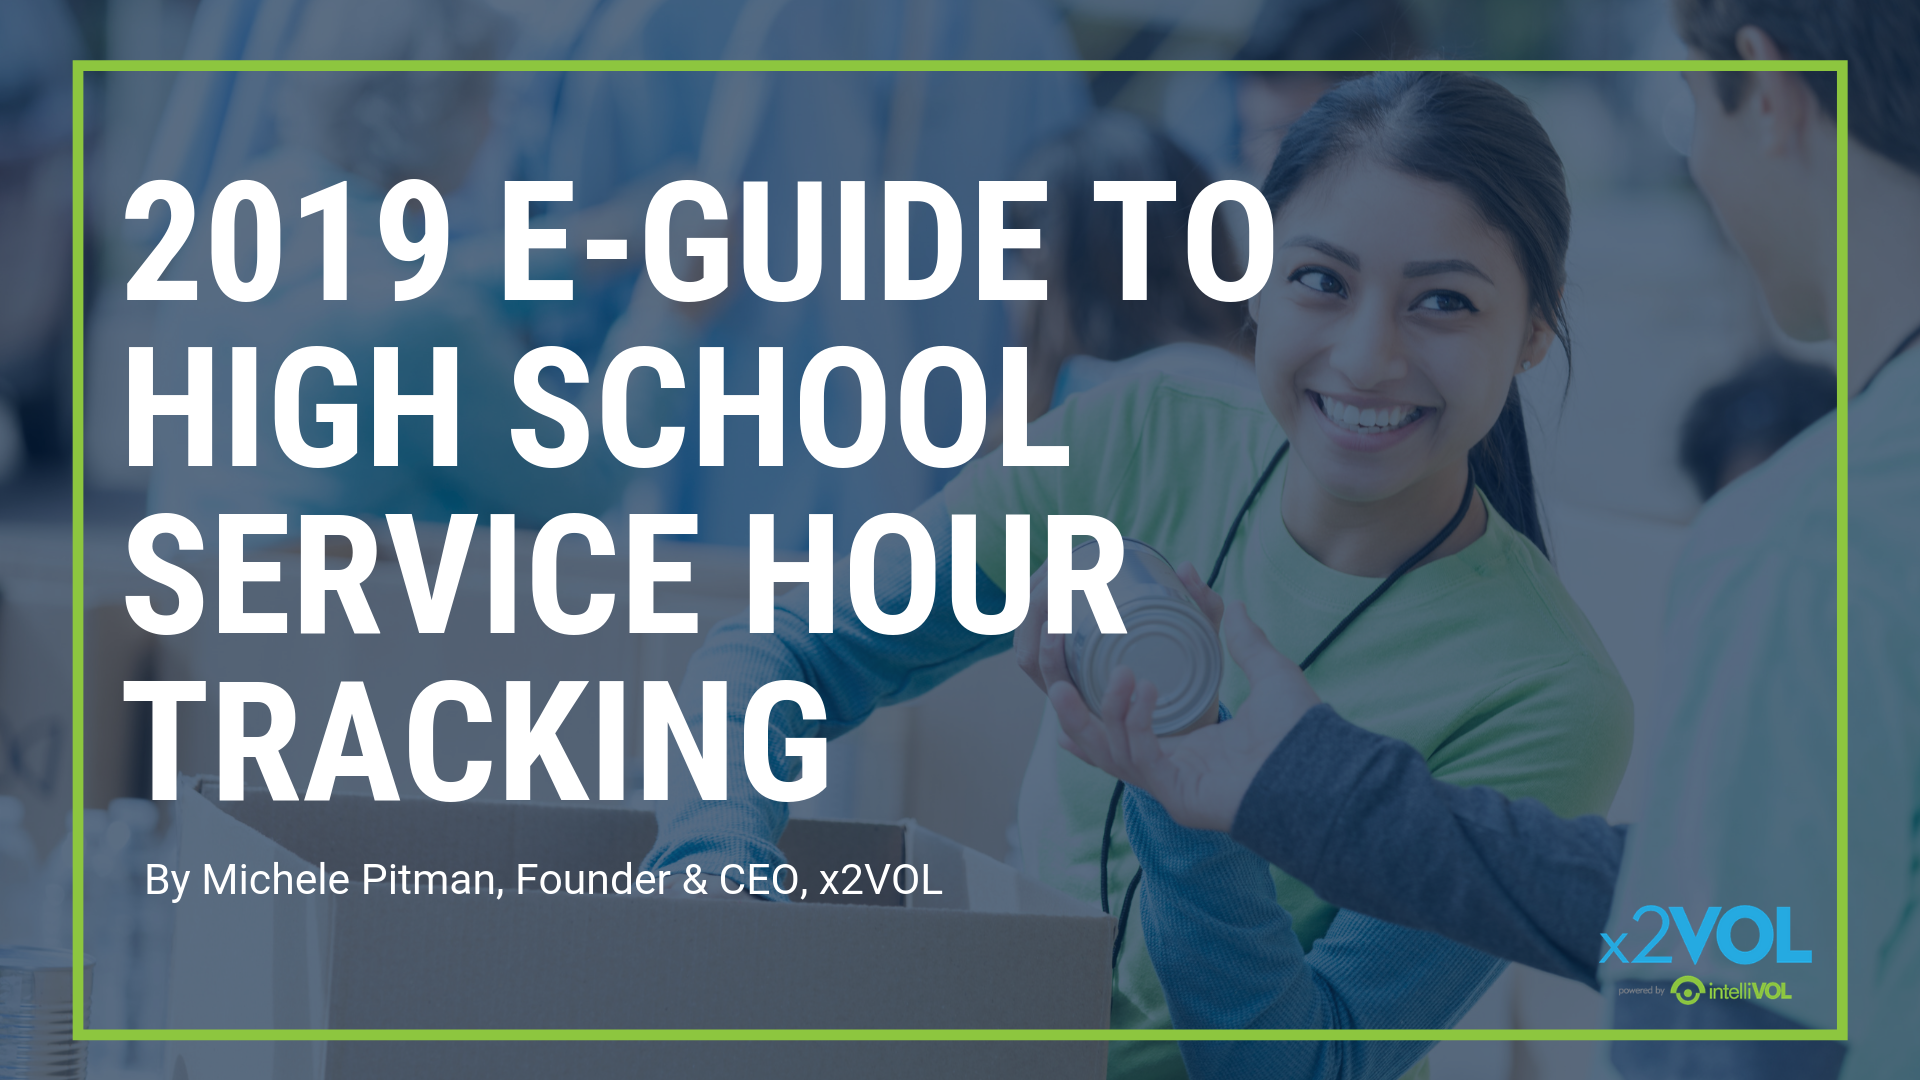 2019 E-Guide to High School Service Hour Tracking